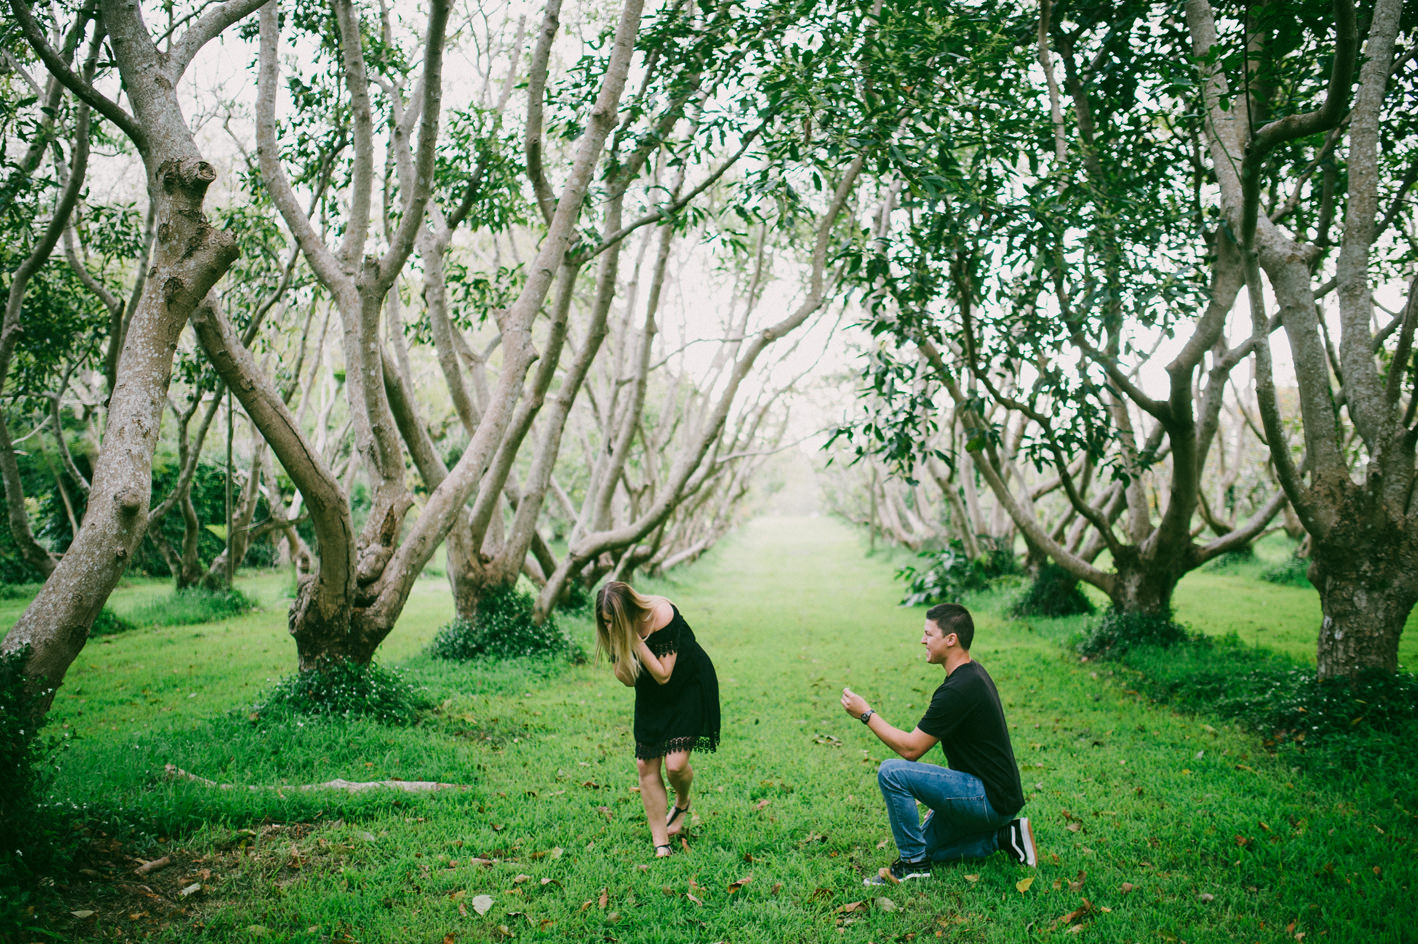 014-proposal-dan-ash_sophie-baker-photography